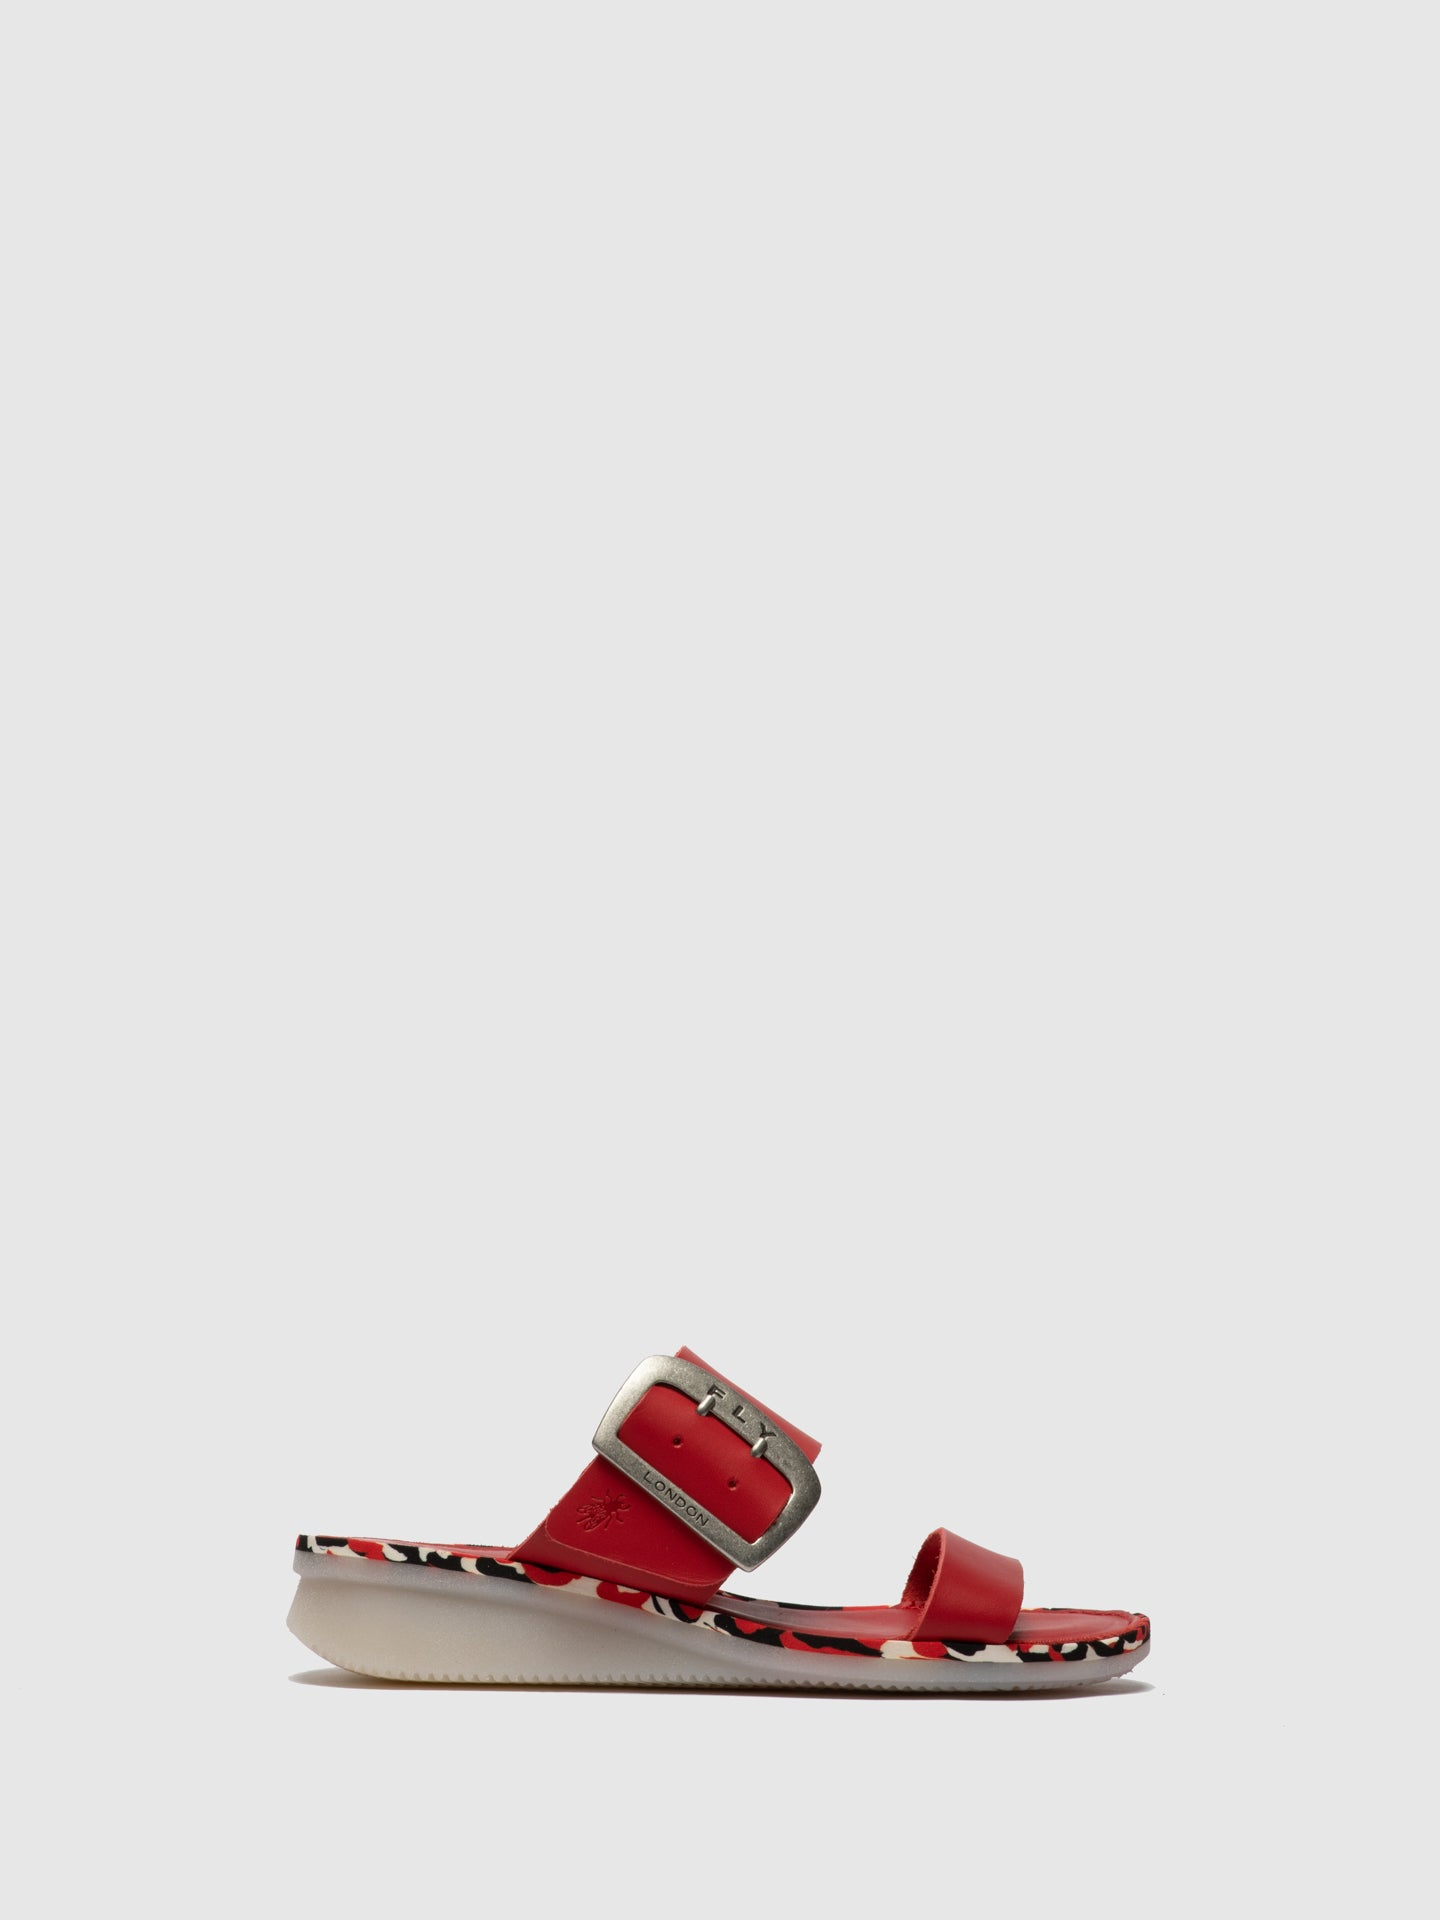 Fly London Red Appliqués Mules